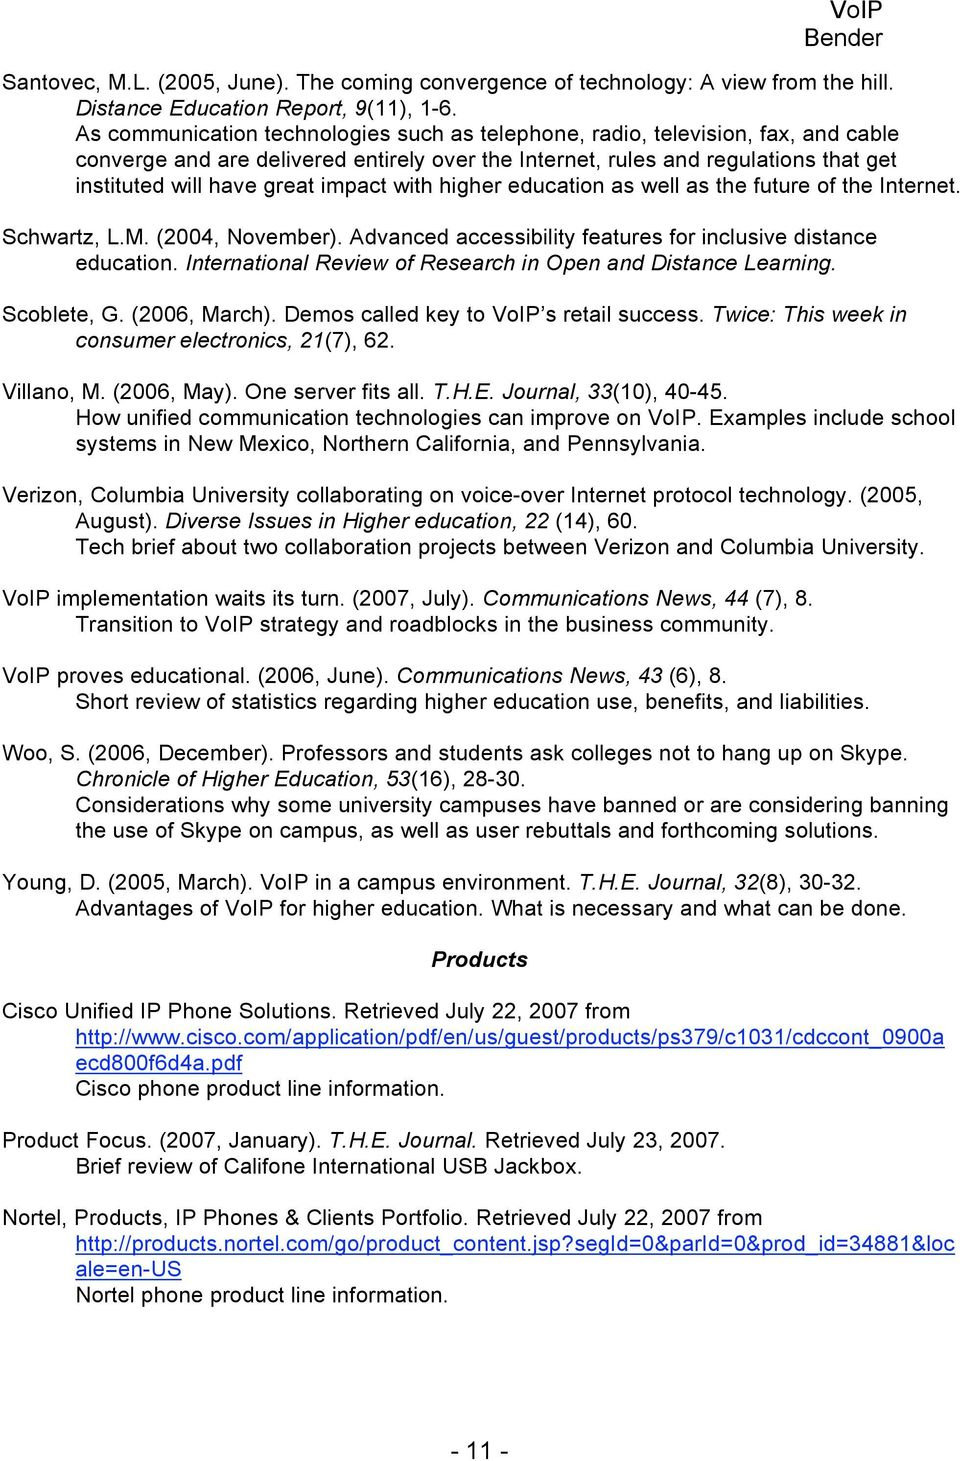 impact with higher education as well as the future of the Internet. Schwartz, L.M. (2004, November). Advanced accessibility features for inclusive distance education.